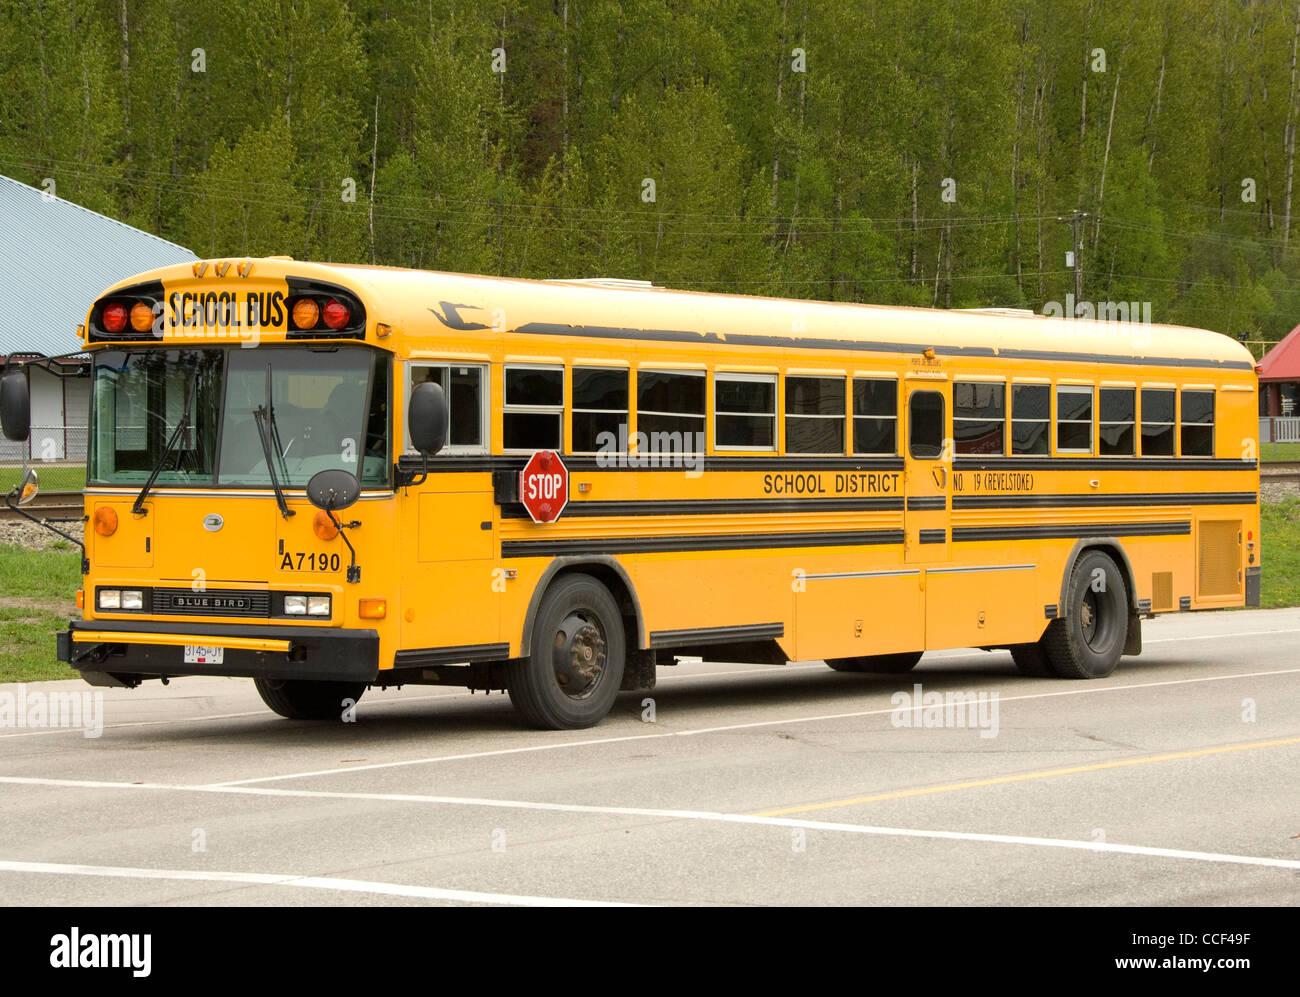 Thomas Built Buses >> Canadian School Bus, Revelstoke, British Columbia, Canada Stock Photo: 42129291 - Alamy